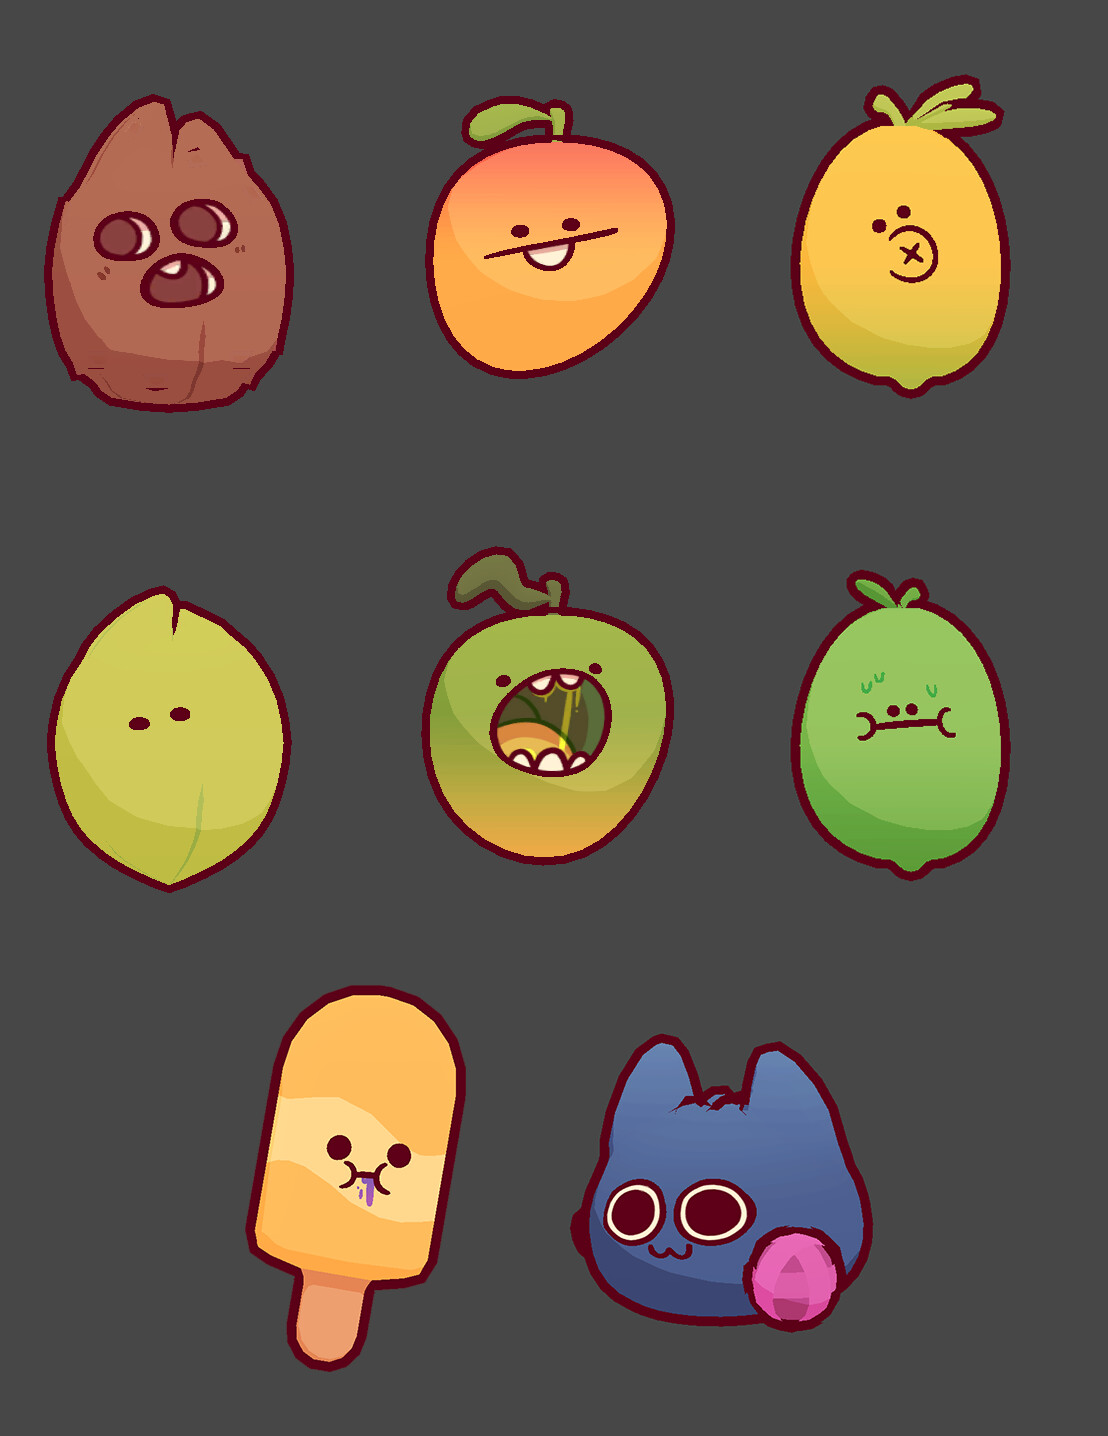 Just a few of the various fruits that I created